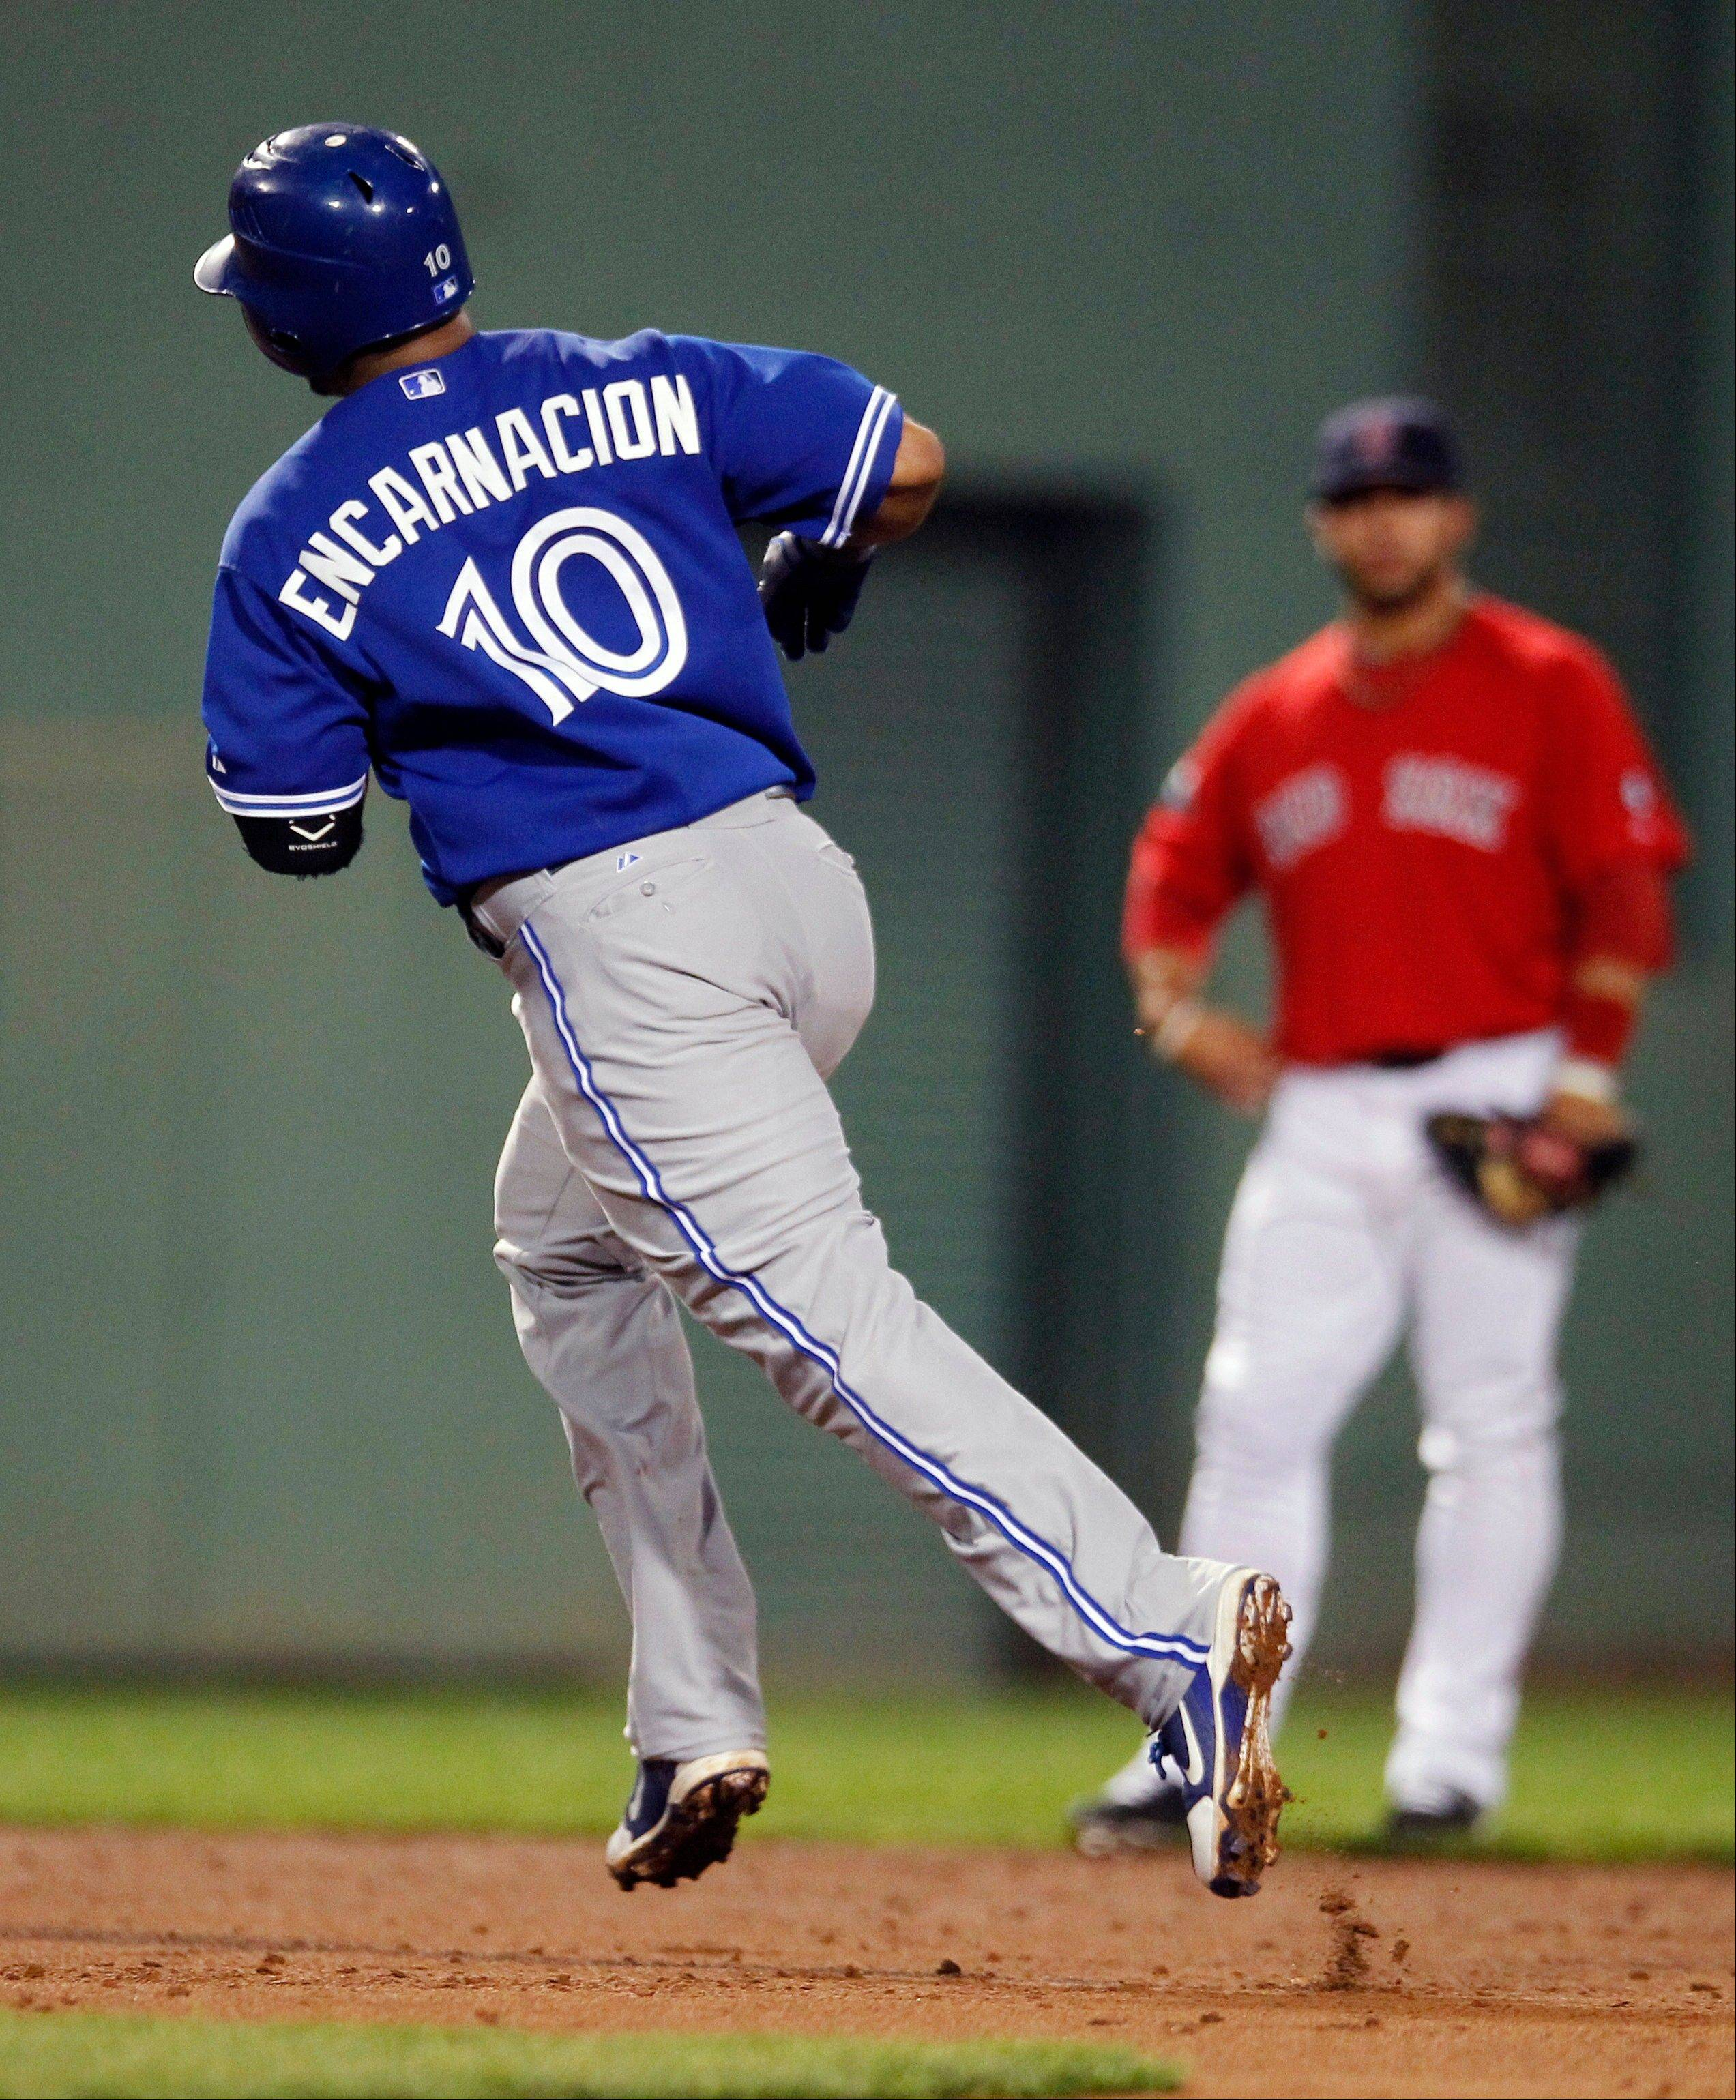 Toronto's Edwin Encarnacion rounds second base on a solo home run in the third inning Friday in Boston.